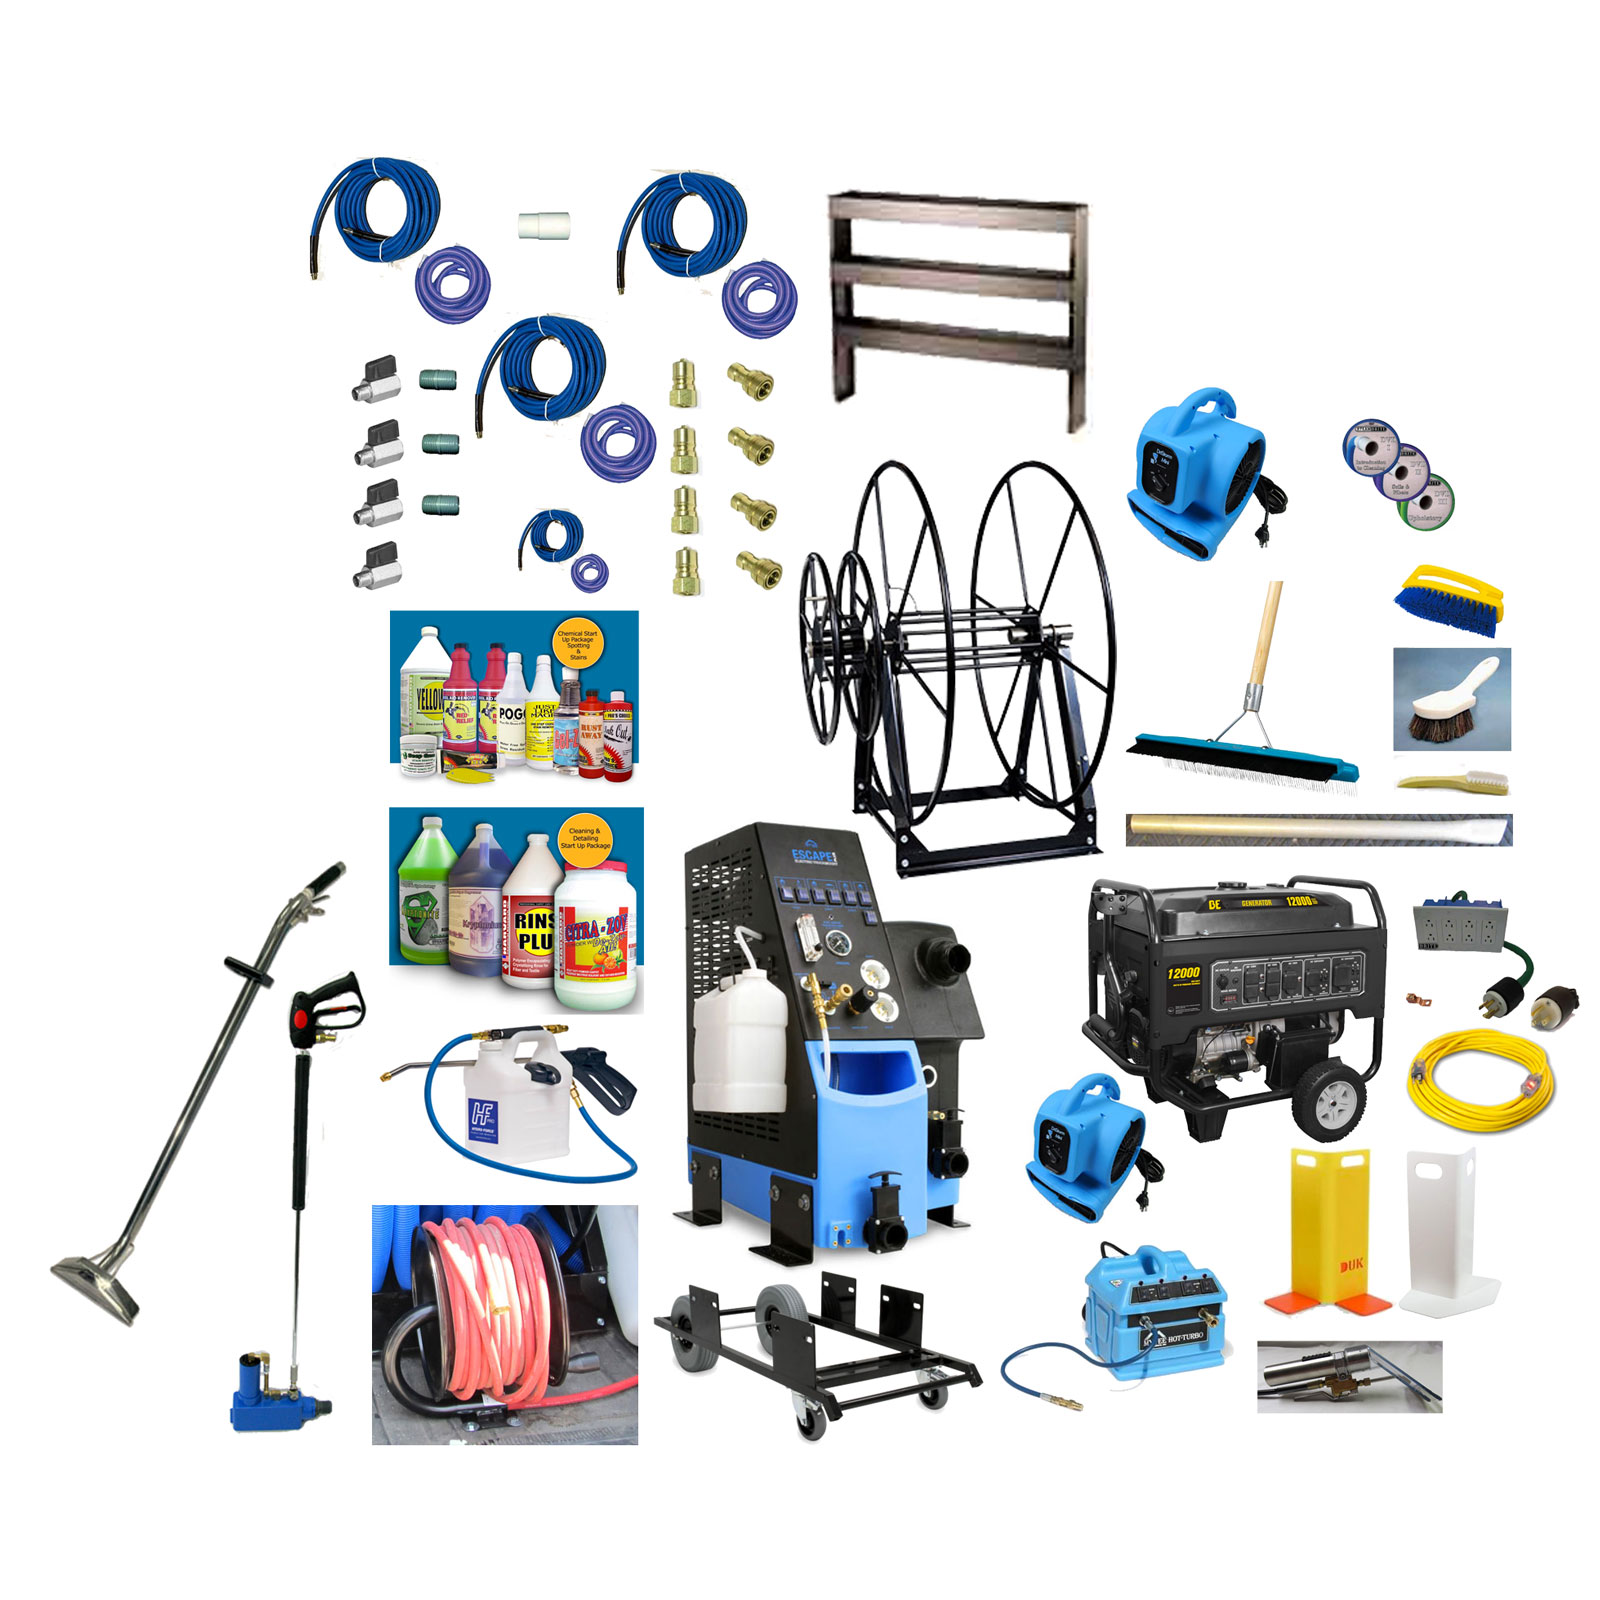 Mytee ETM-LX-PLUS Escape Quad 6.6 LX Vacs 600Psi Electric TruckMount Starter Package Tools Wands Generator 96234815